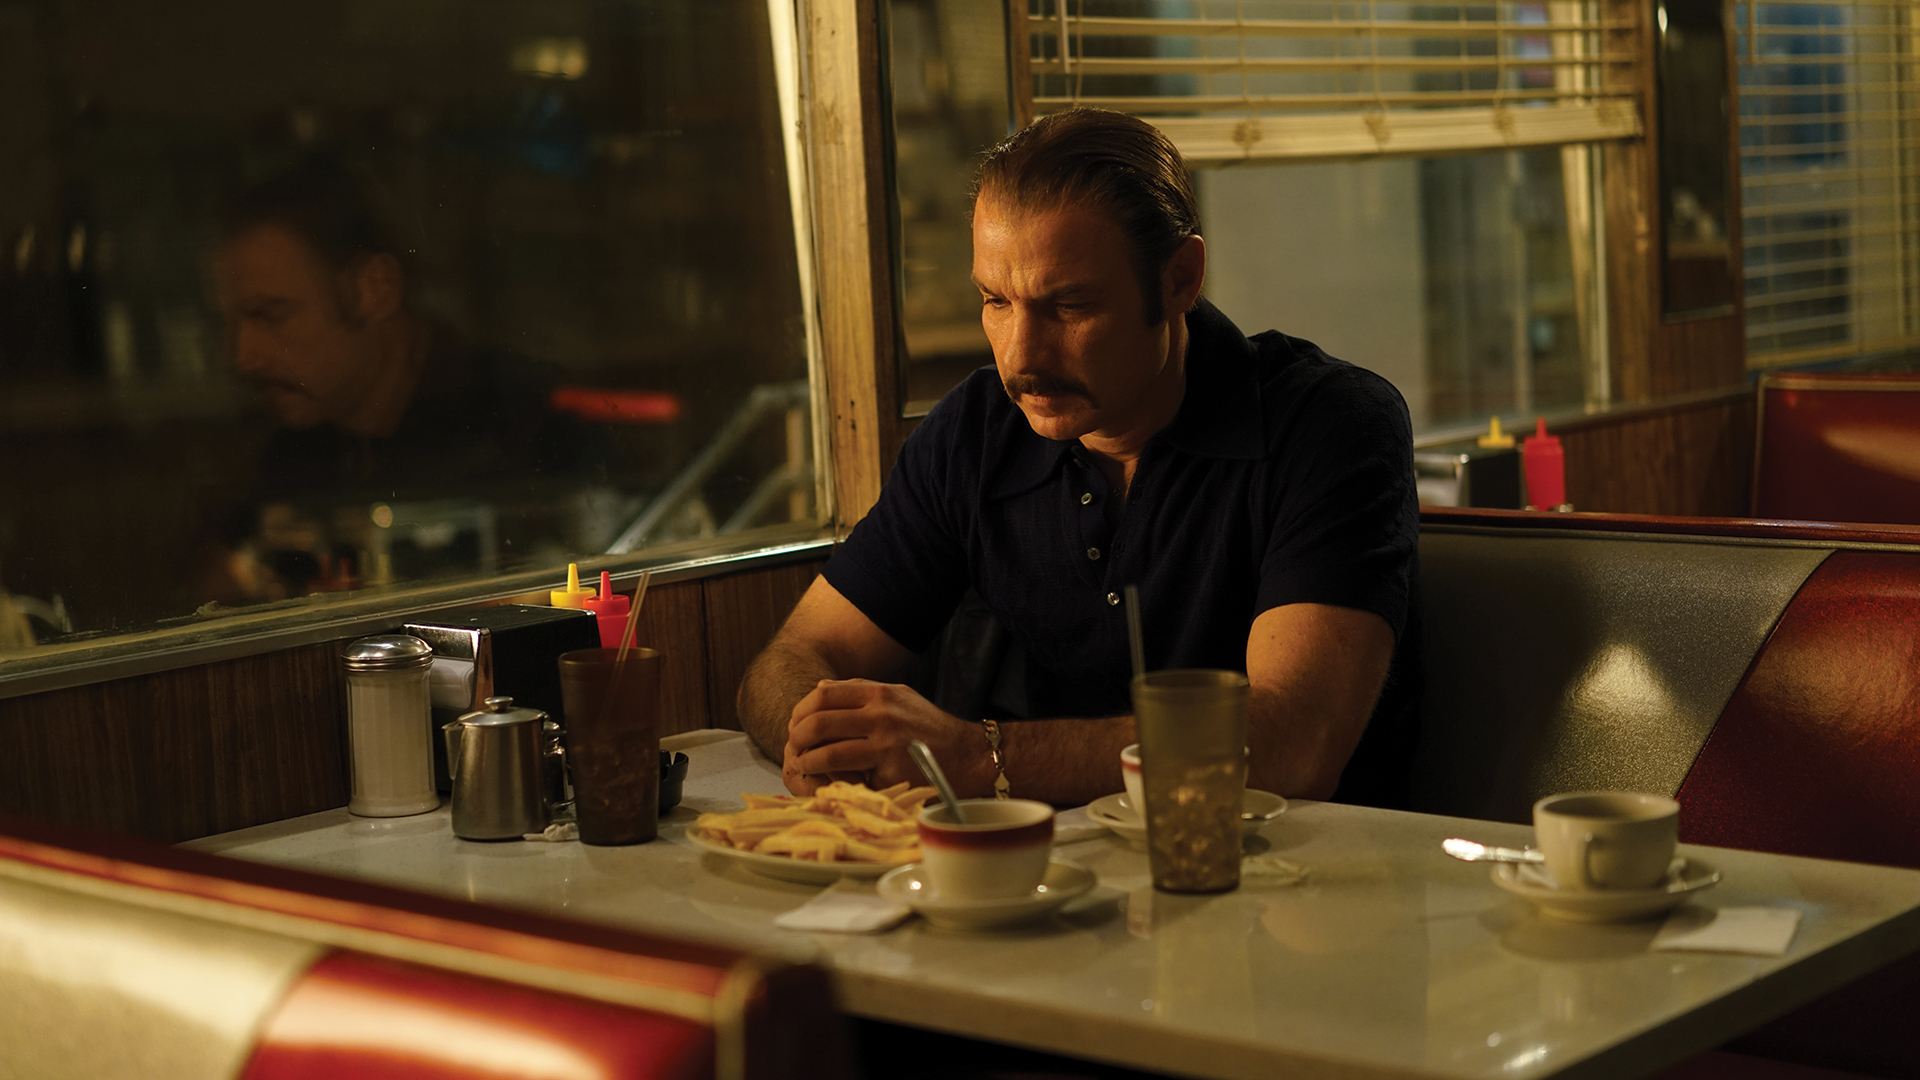 Liev Schreiber as Chuck Wepner in Philippe Falardeau's CHUCK. Courtesy of IFC Films. An IFC Films release.